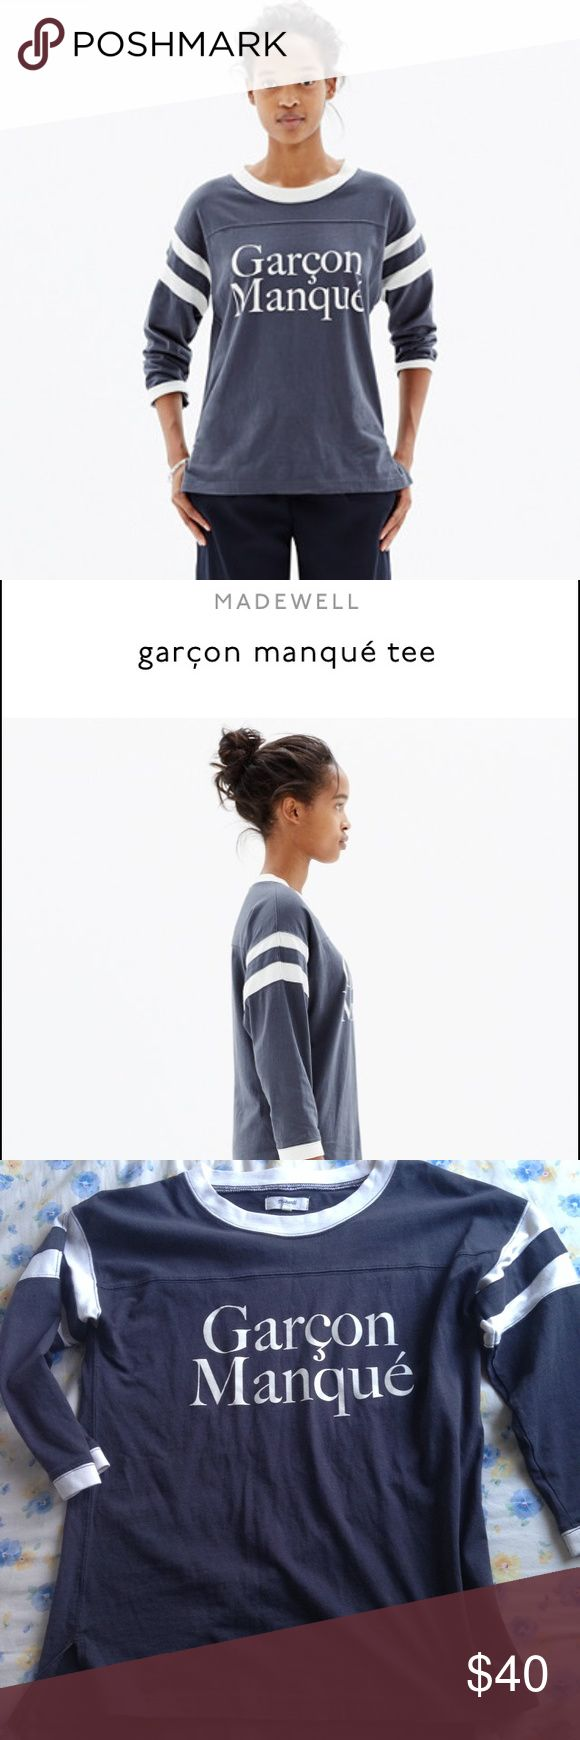 "Madewell Garçon Manqué Tee XS Sold out online. Originally $50. Barely noticeable stain on back. Size xs. Means ""Tomboy"" in French ❤️ Madewell Tops"